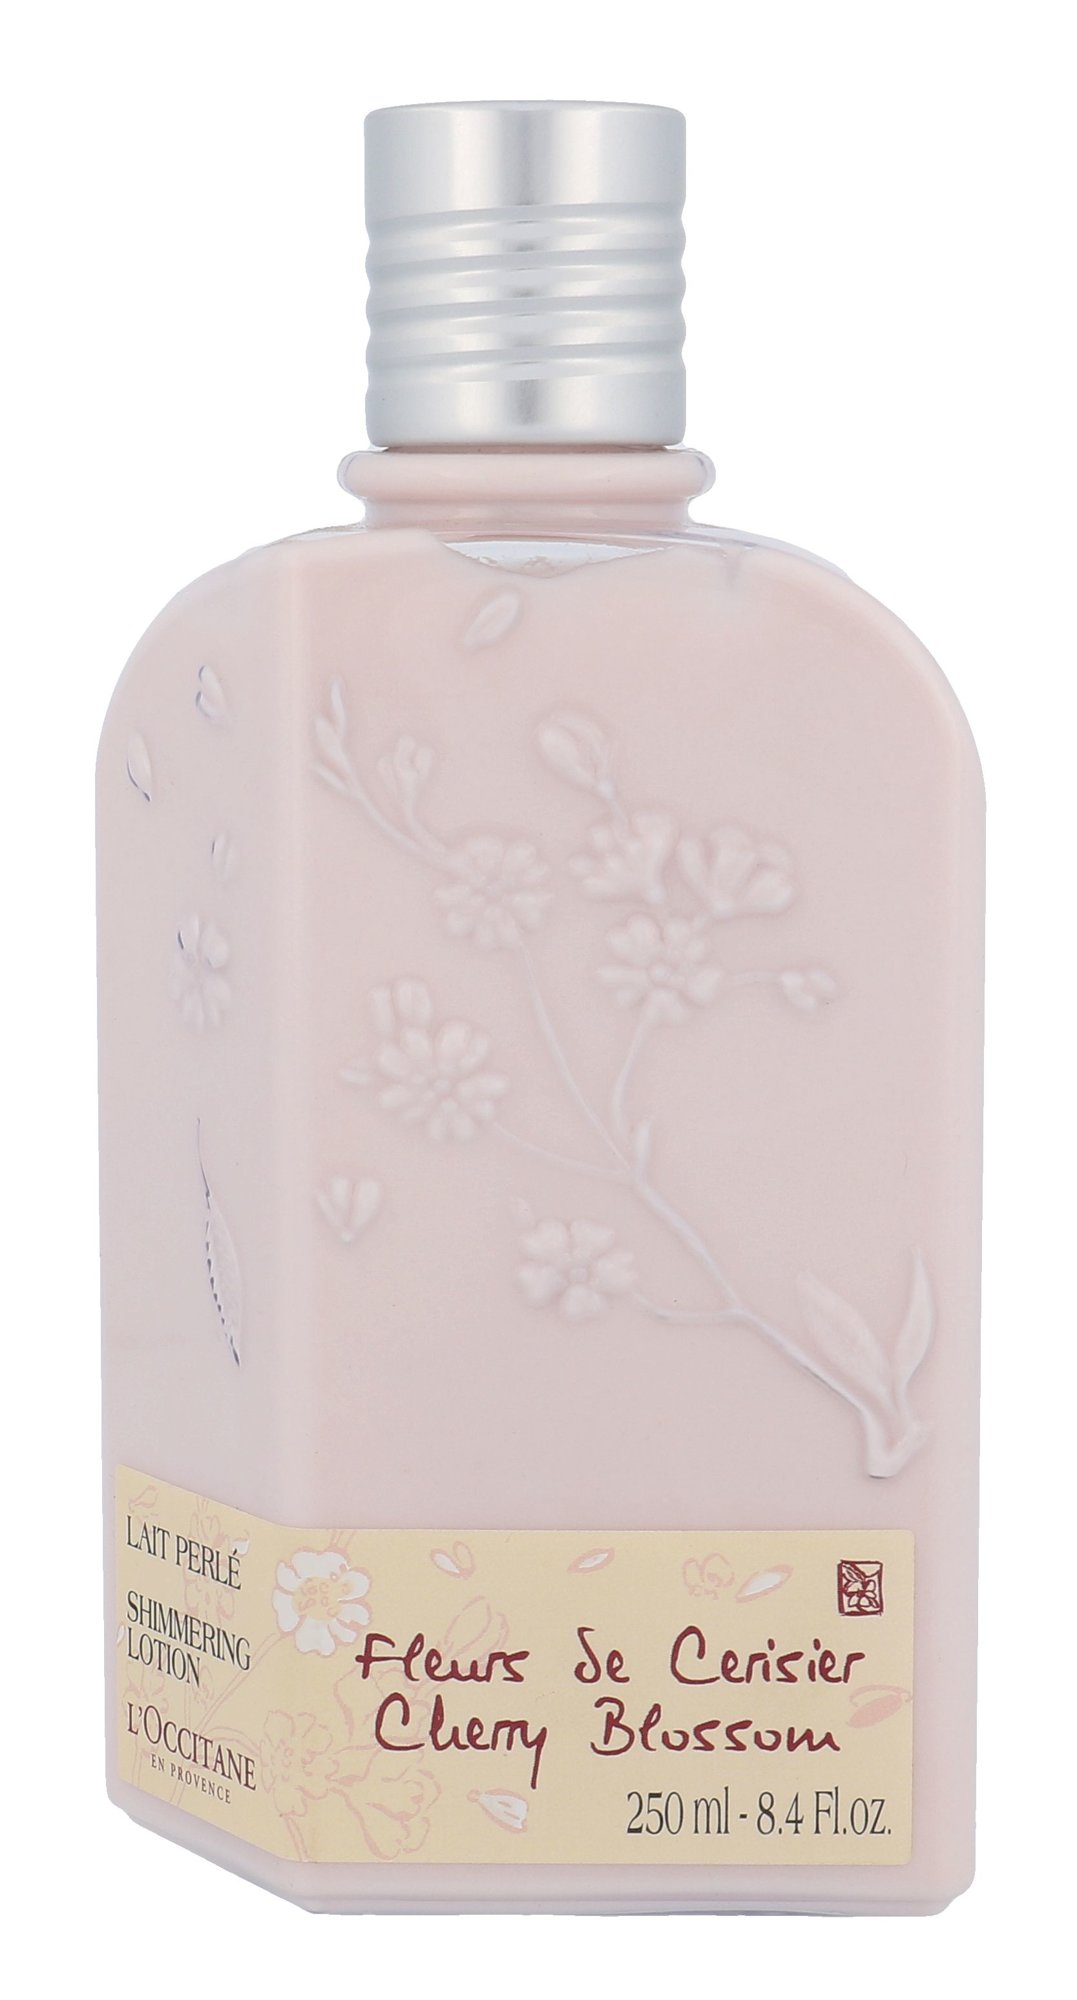 L´Occitane Cherry Blossom Cosmetic 250ml